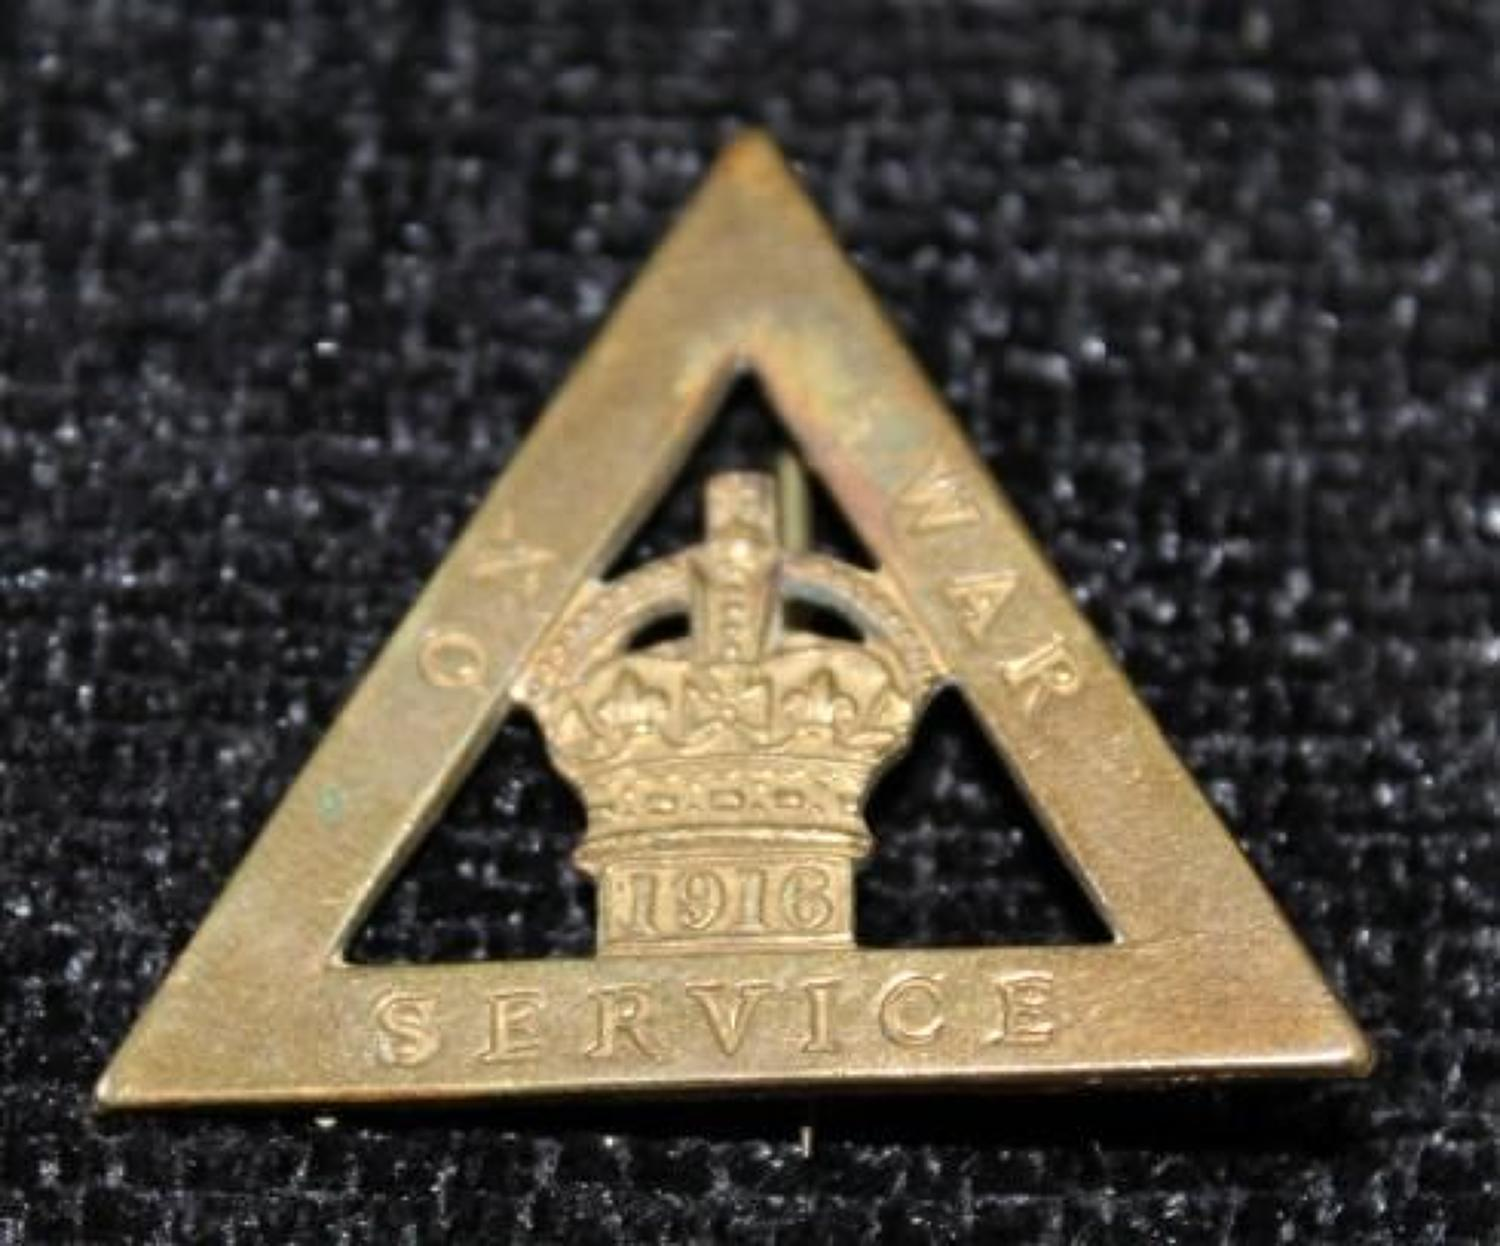 1916 Dated On War Service Badge